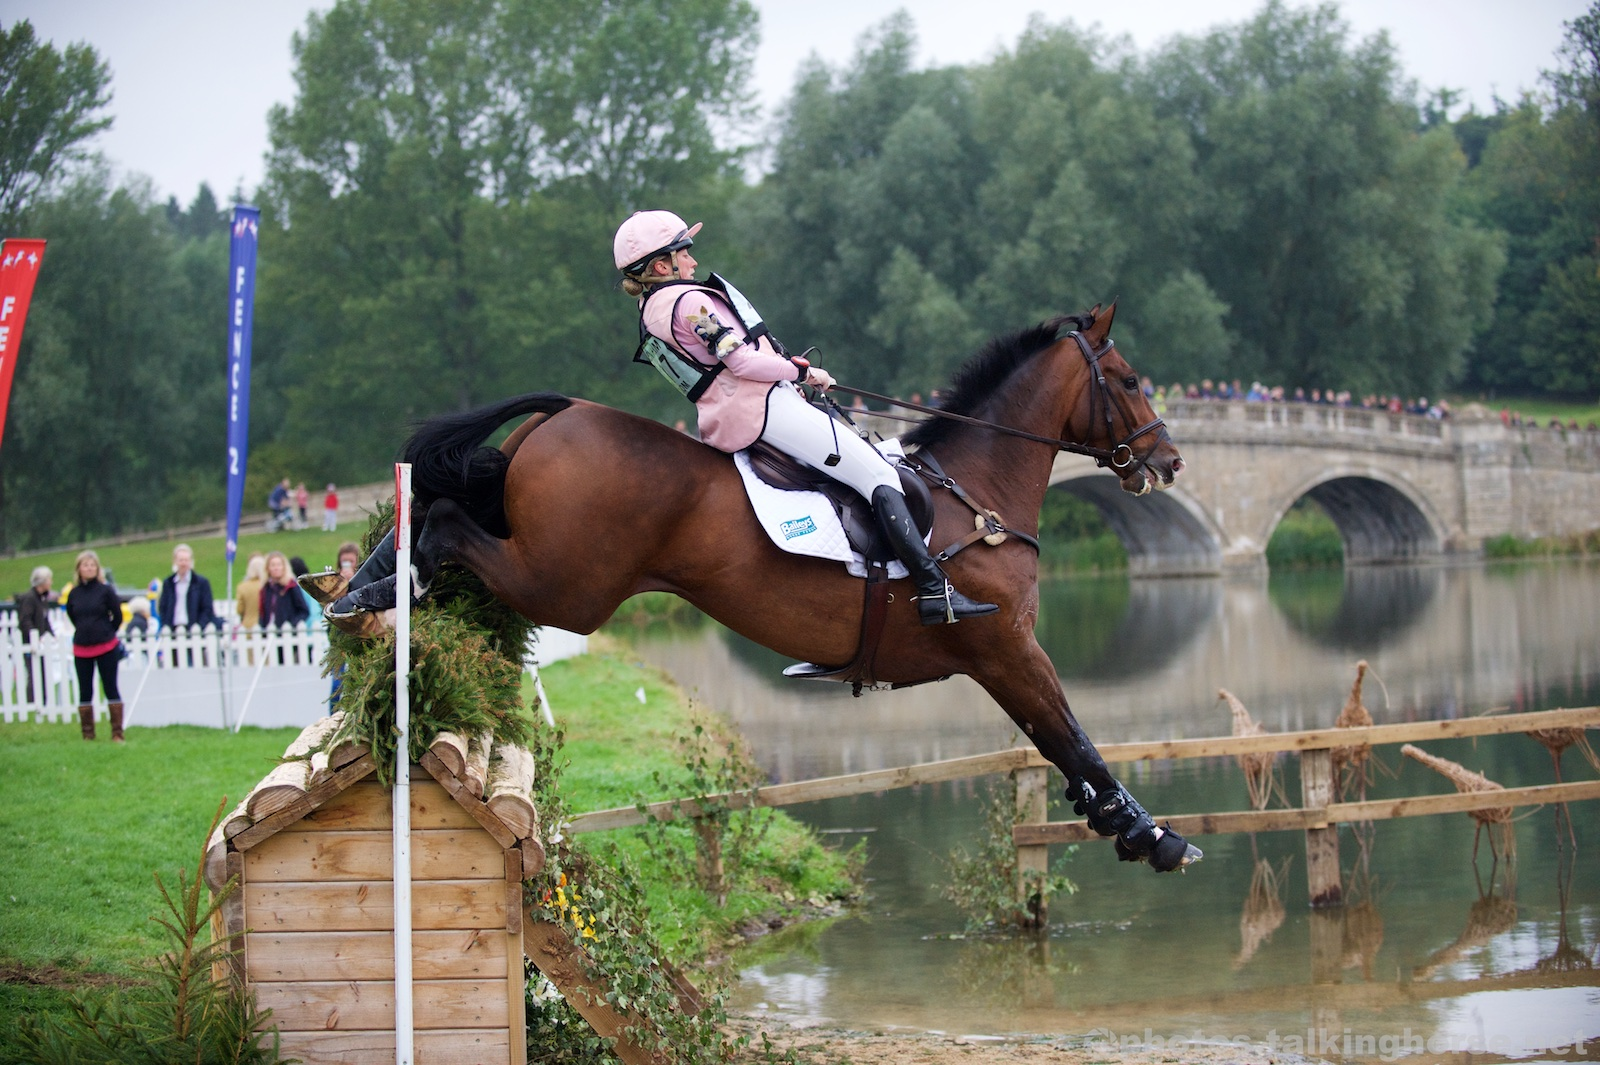 Carrie Byrom | Blenheim Horse Trials 2015 CIC***